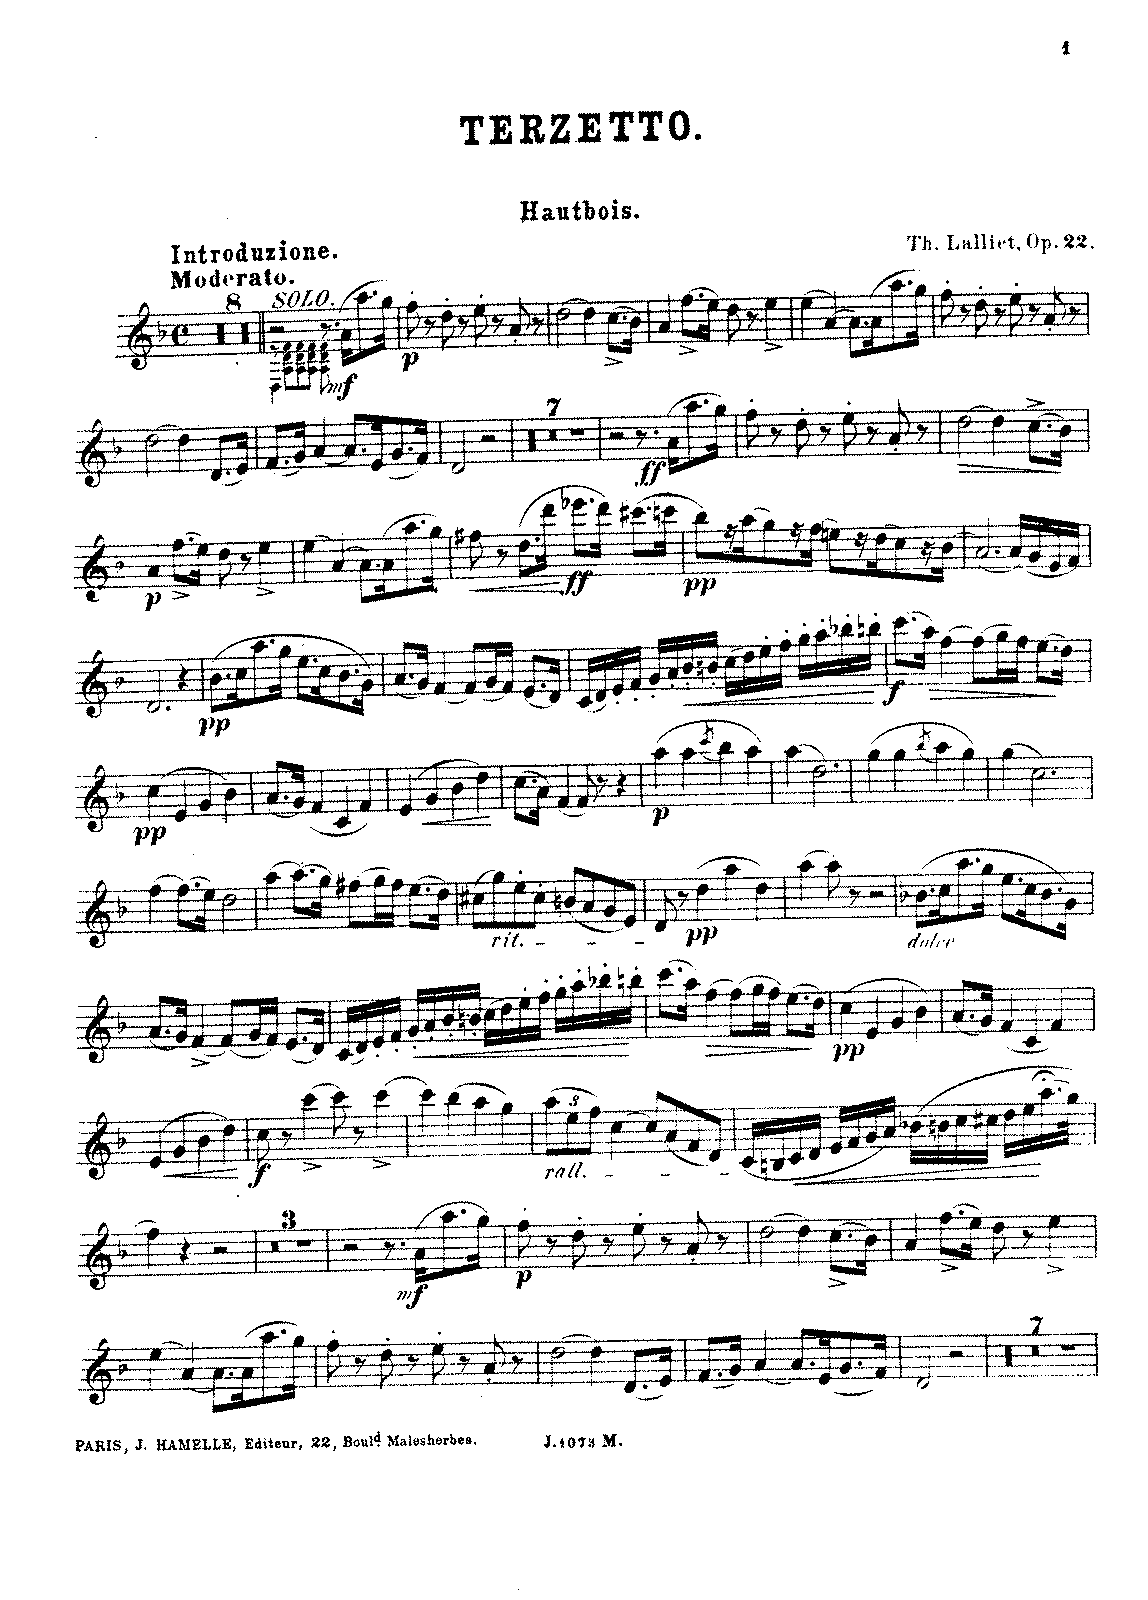 Lalliet - Terzetto for Oboe, Basson, and piano Op. 22.pdf